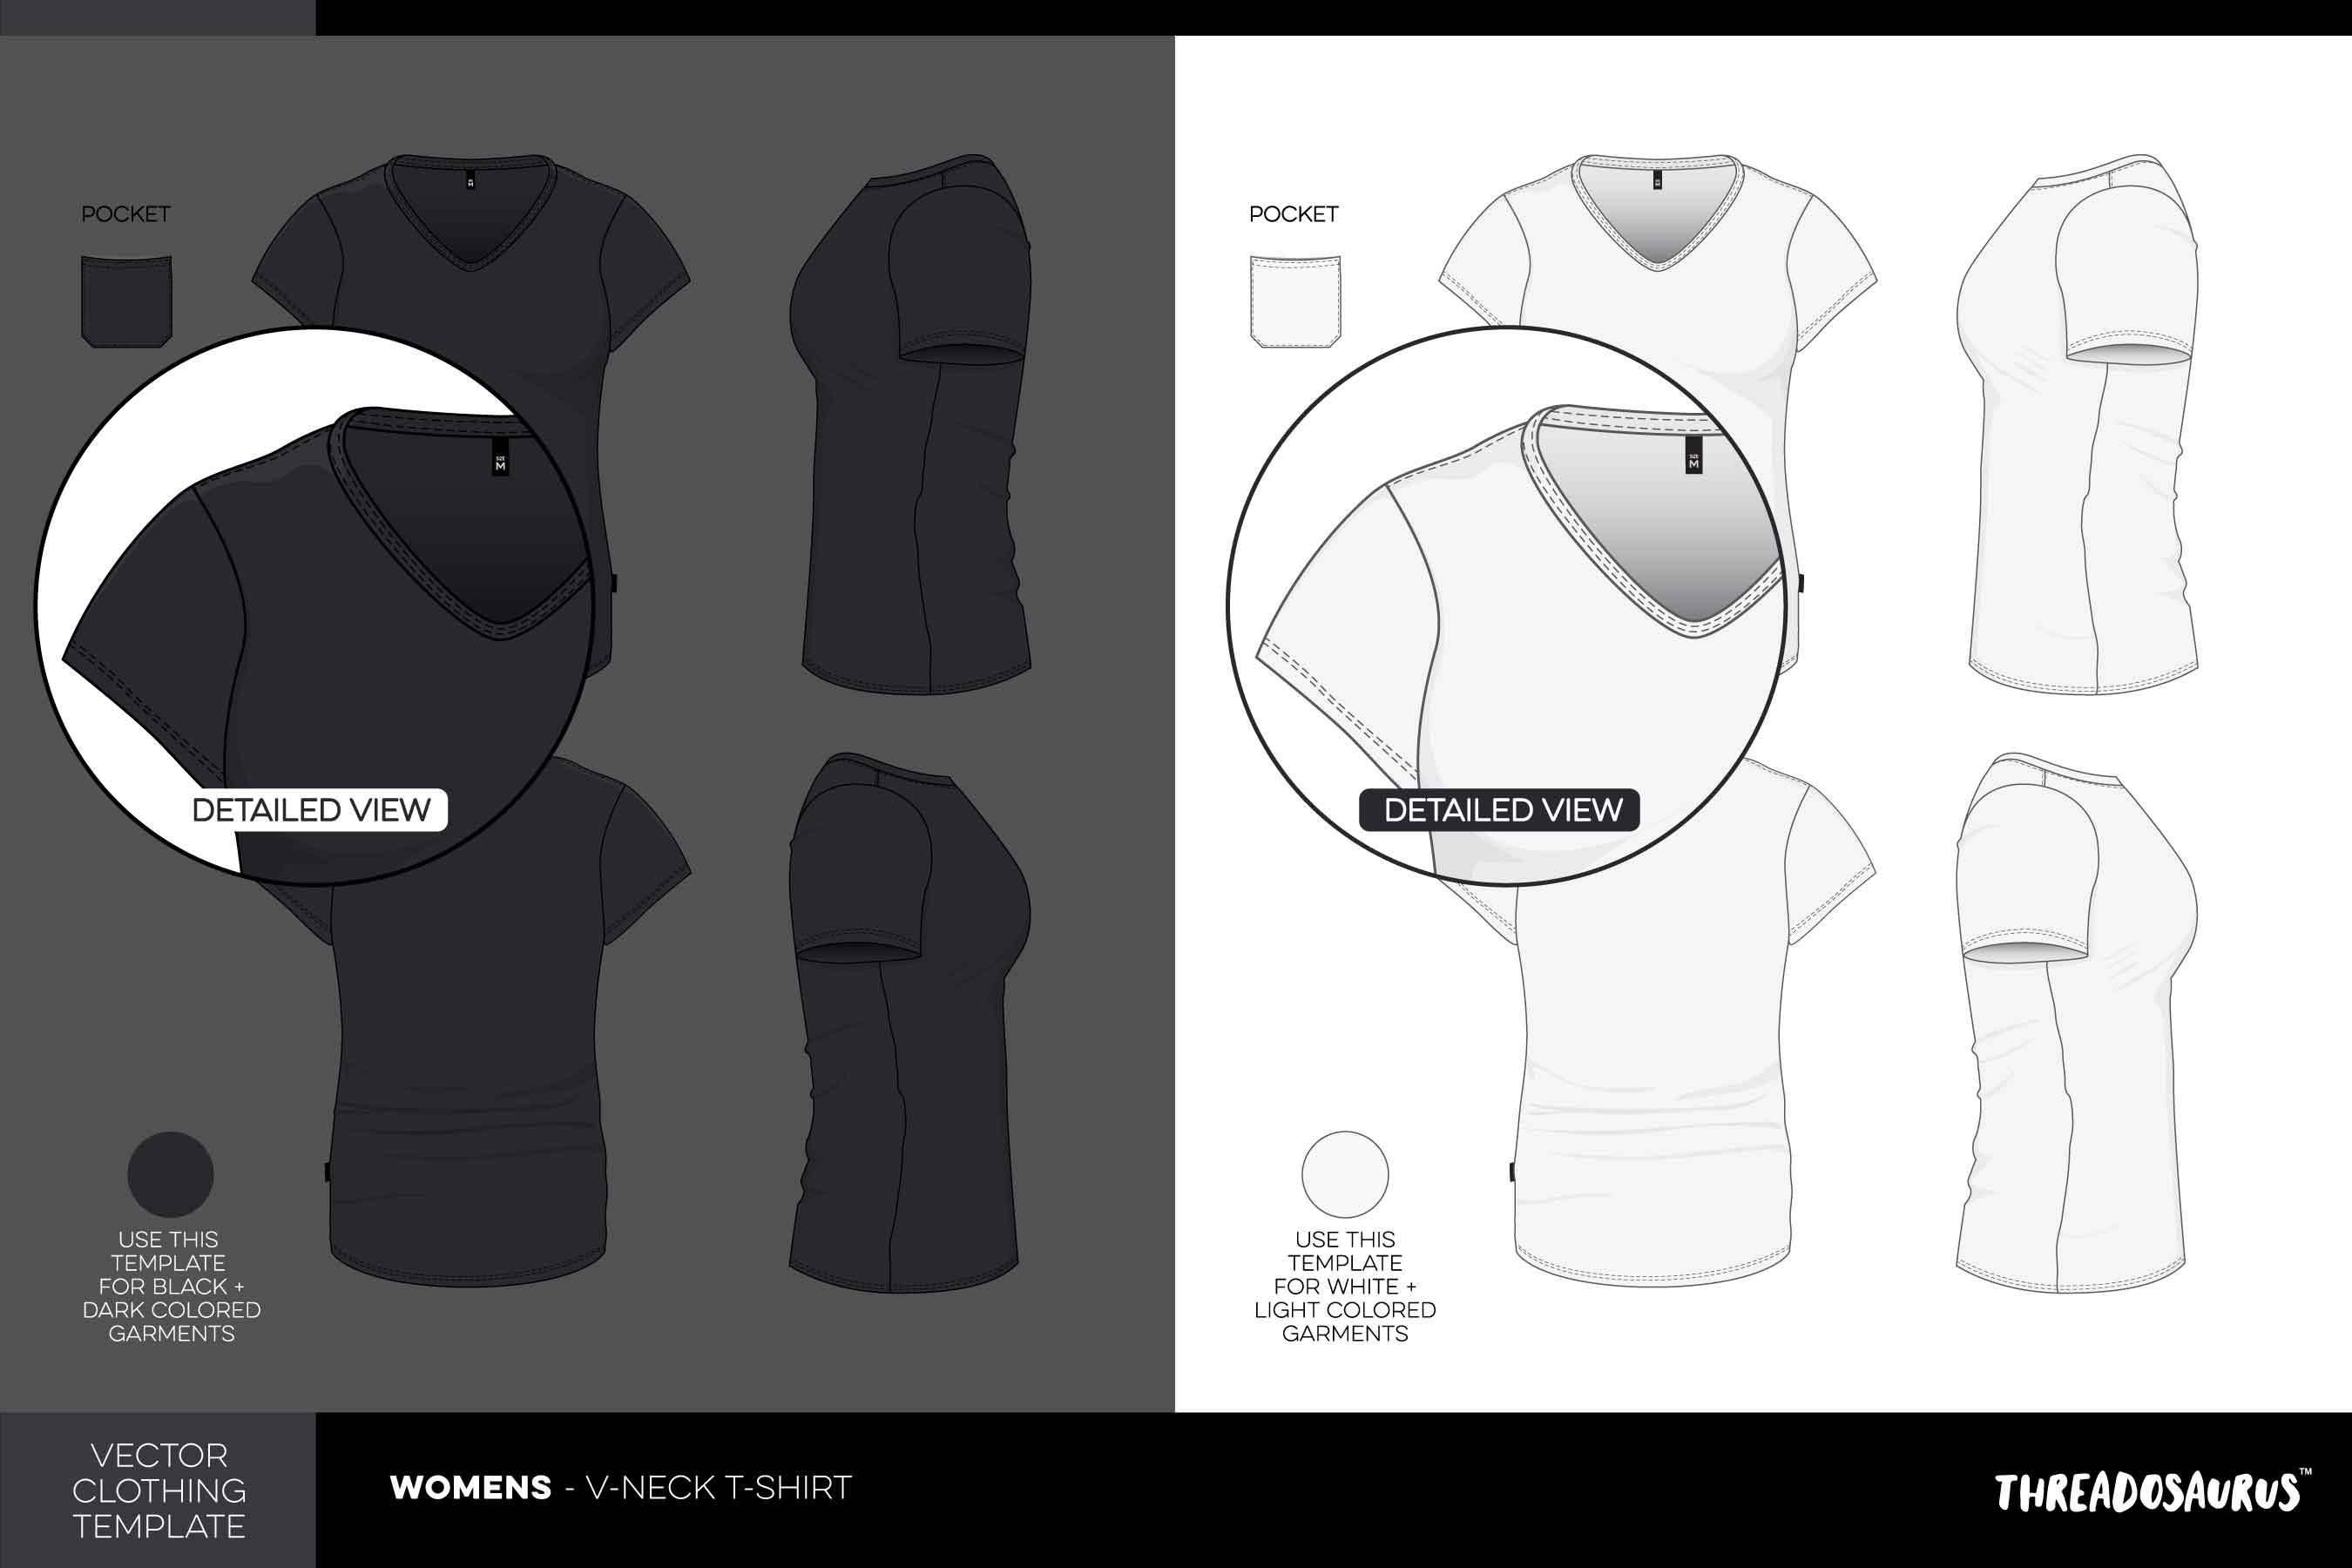 Womens v-neck t-shirt template vector pack